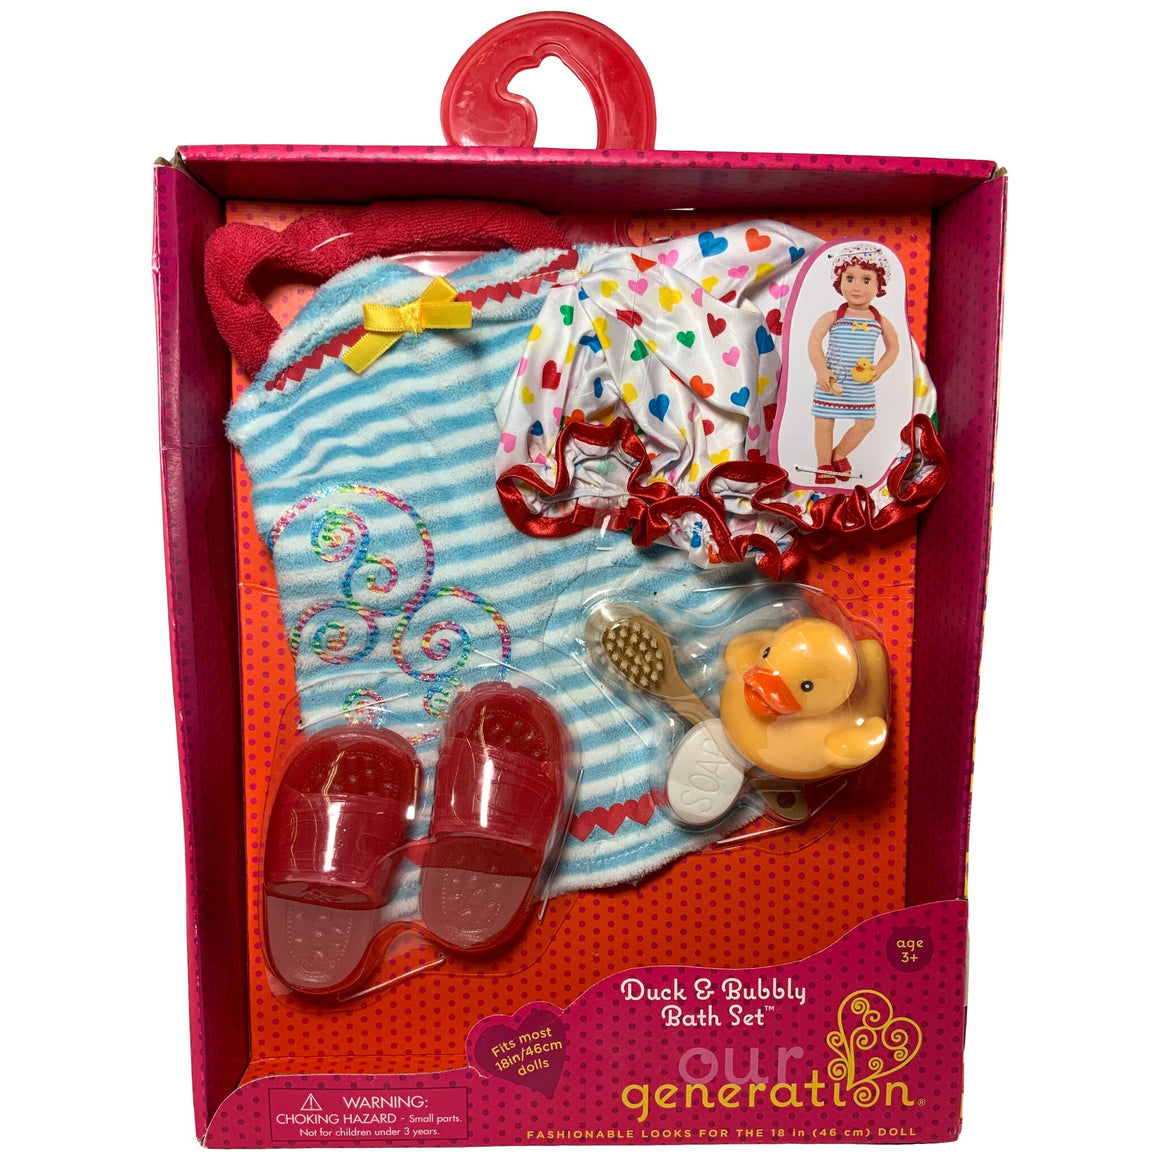 Our Generation - Duck & Bubbly Bath Set